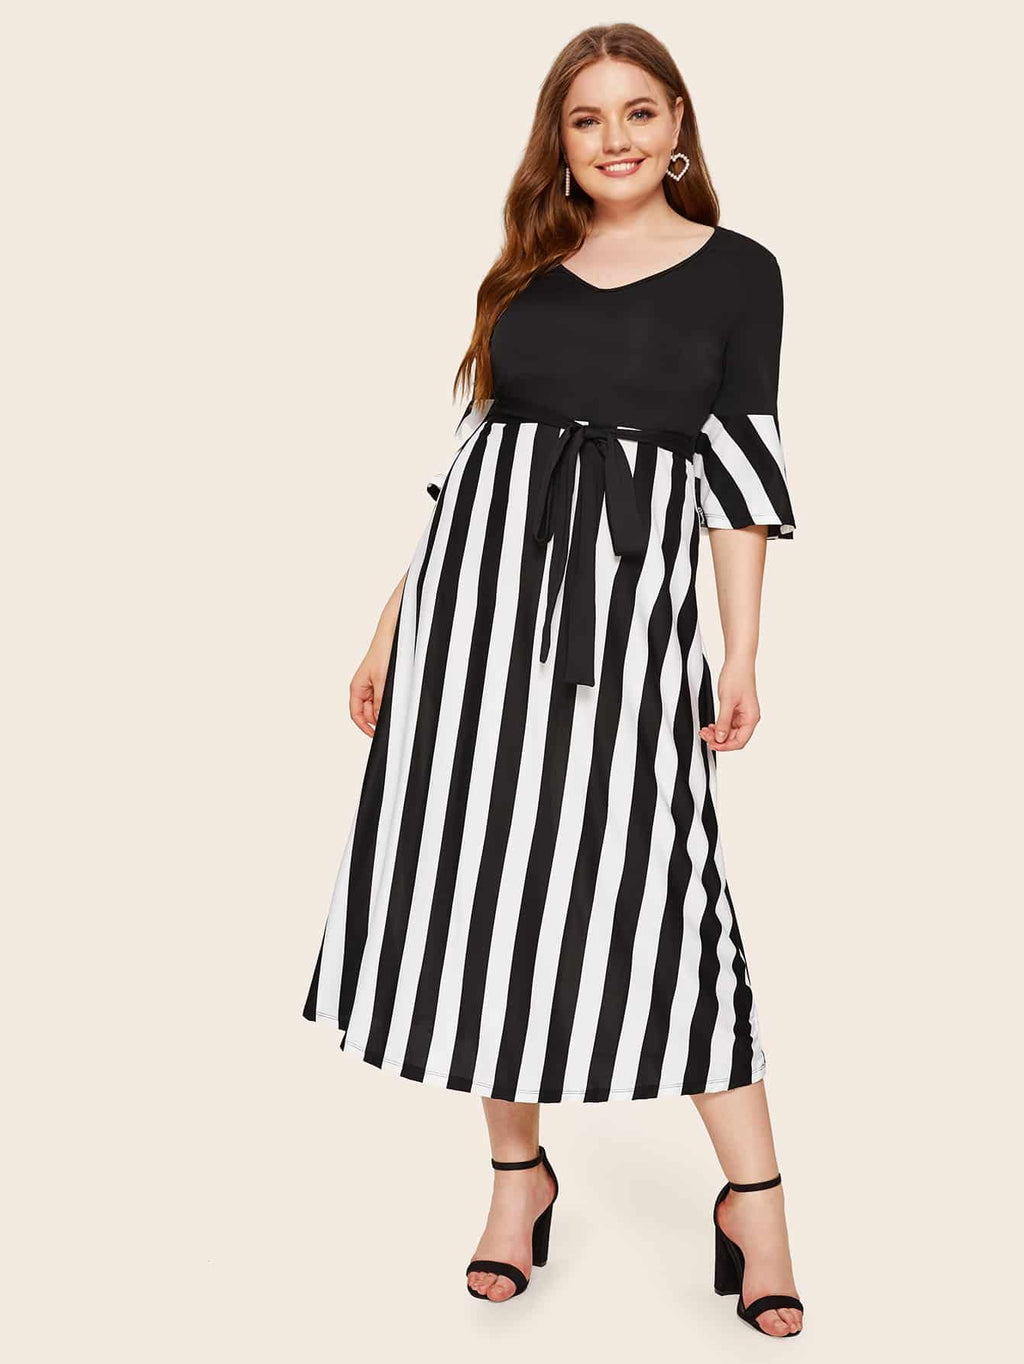 Plus Size Chic V-neck Belted Dress